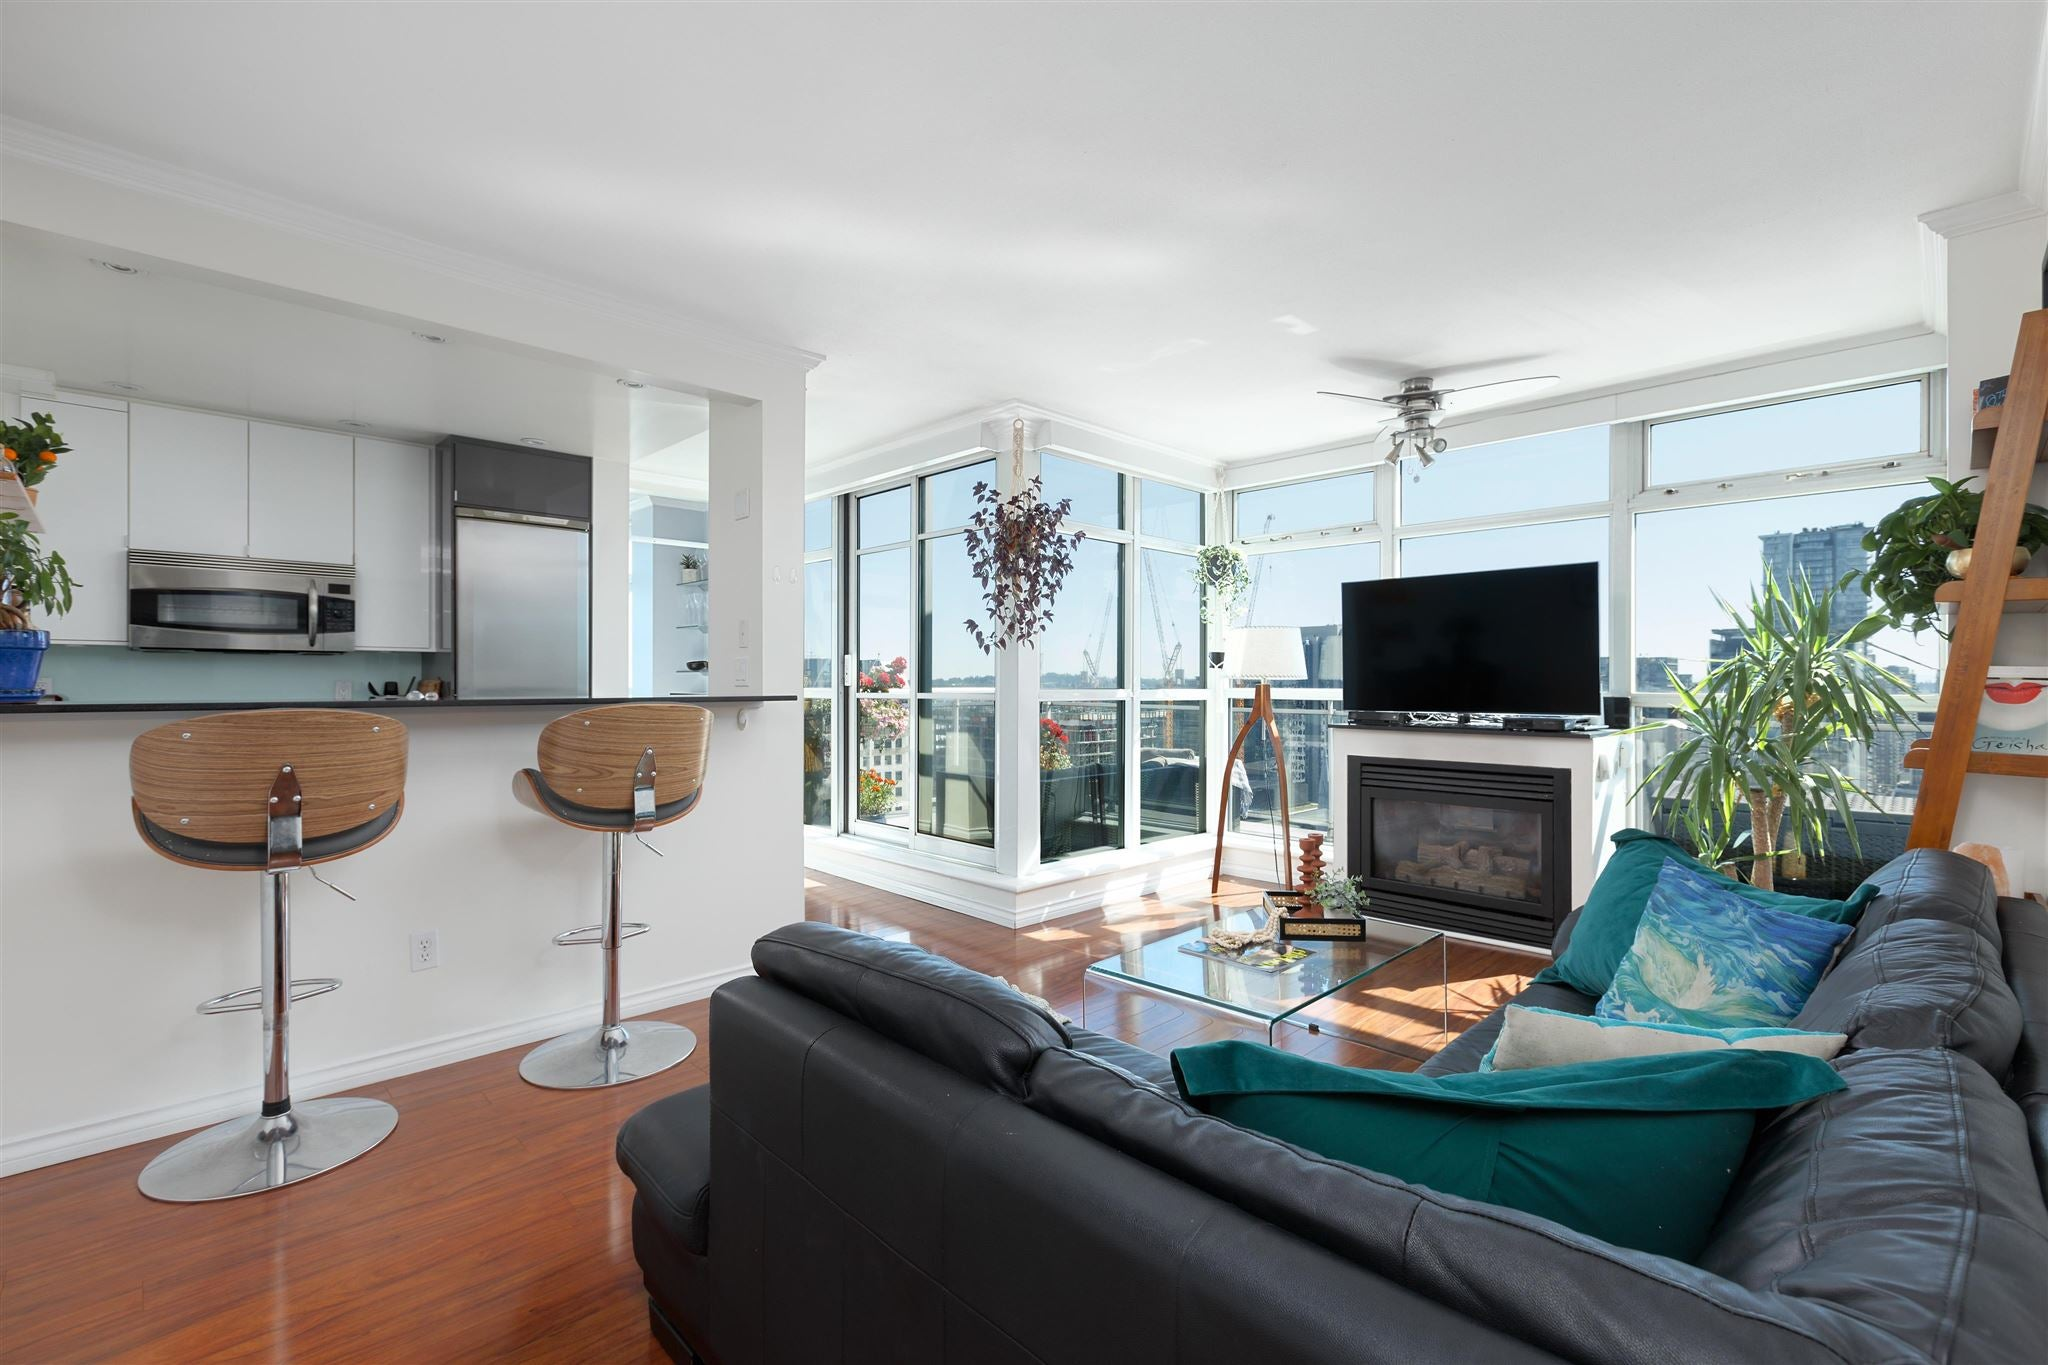 3106 438 SEYMOUR STREET - Downtown VW Apartment/Condo for sale, 2 Bedrooms (R2619932) - #1